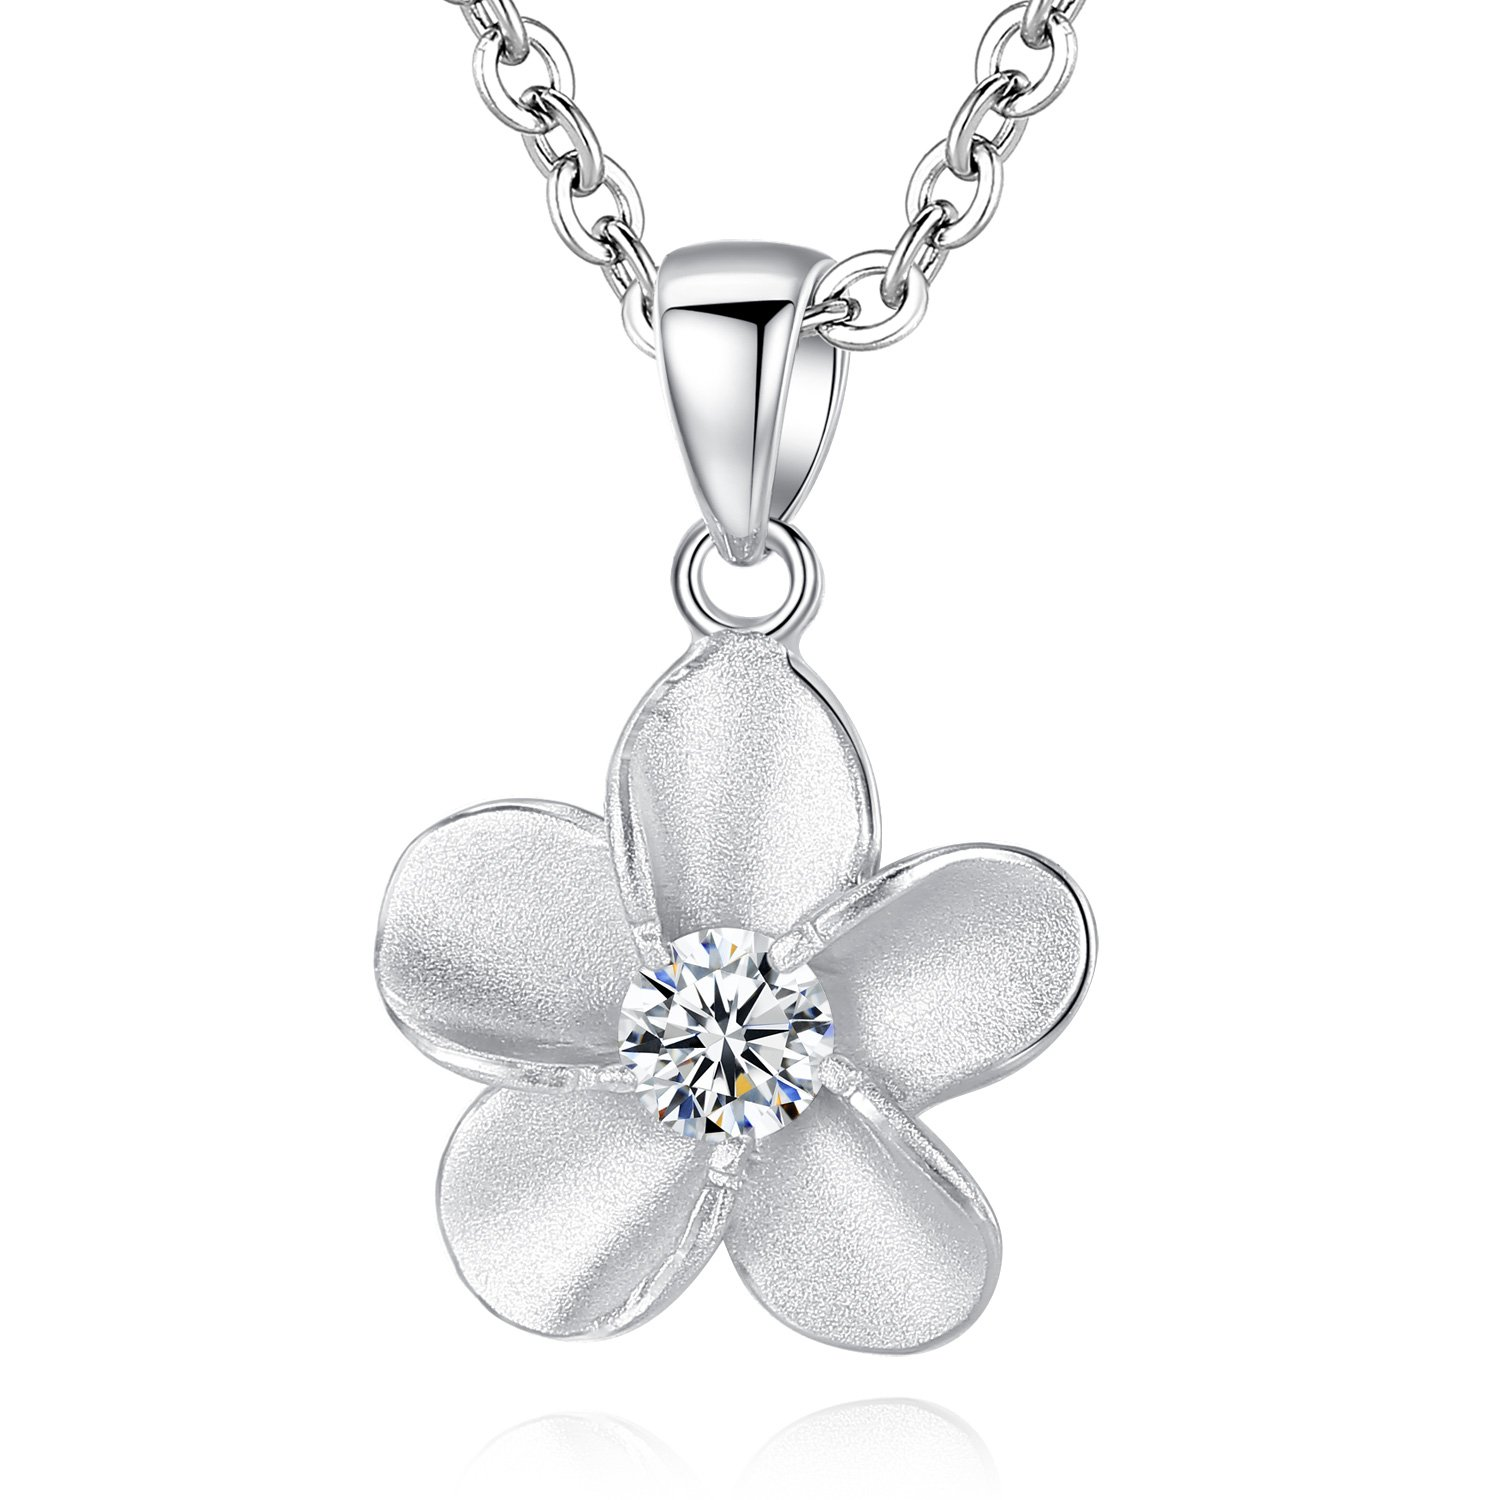 MON MEILL Fashion Jewelry Plumeria Flower 18k Gold Plated Cubic Zirconia Pendant Necklace for Women and Girls